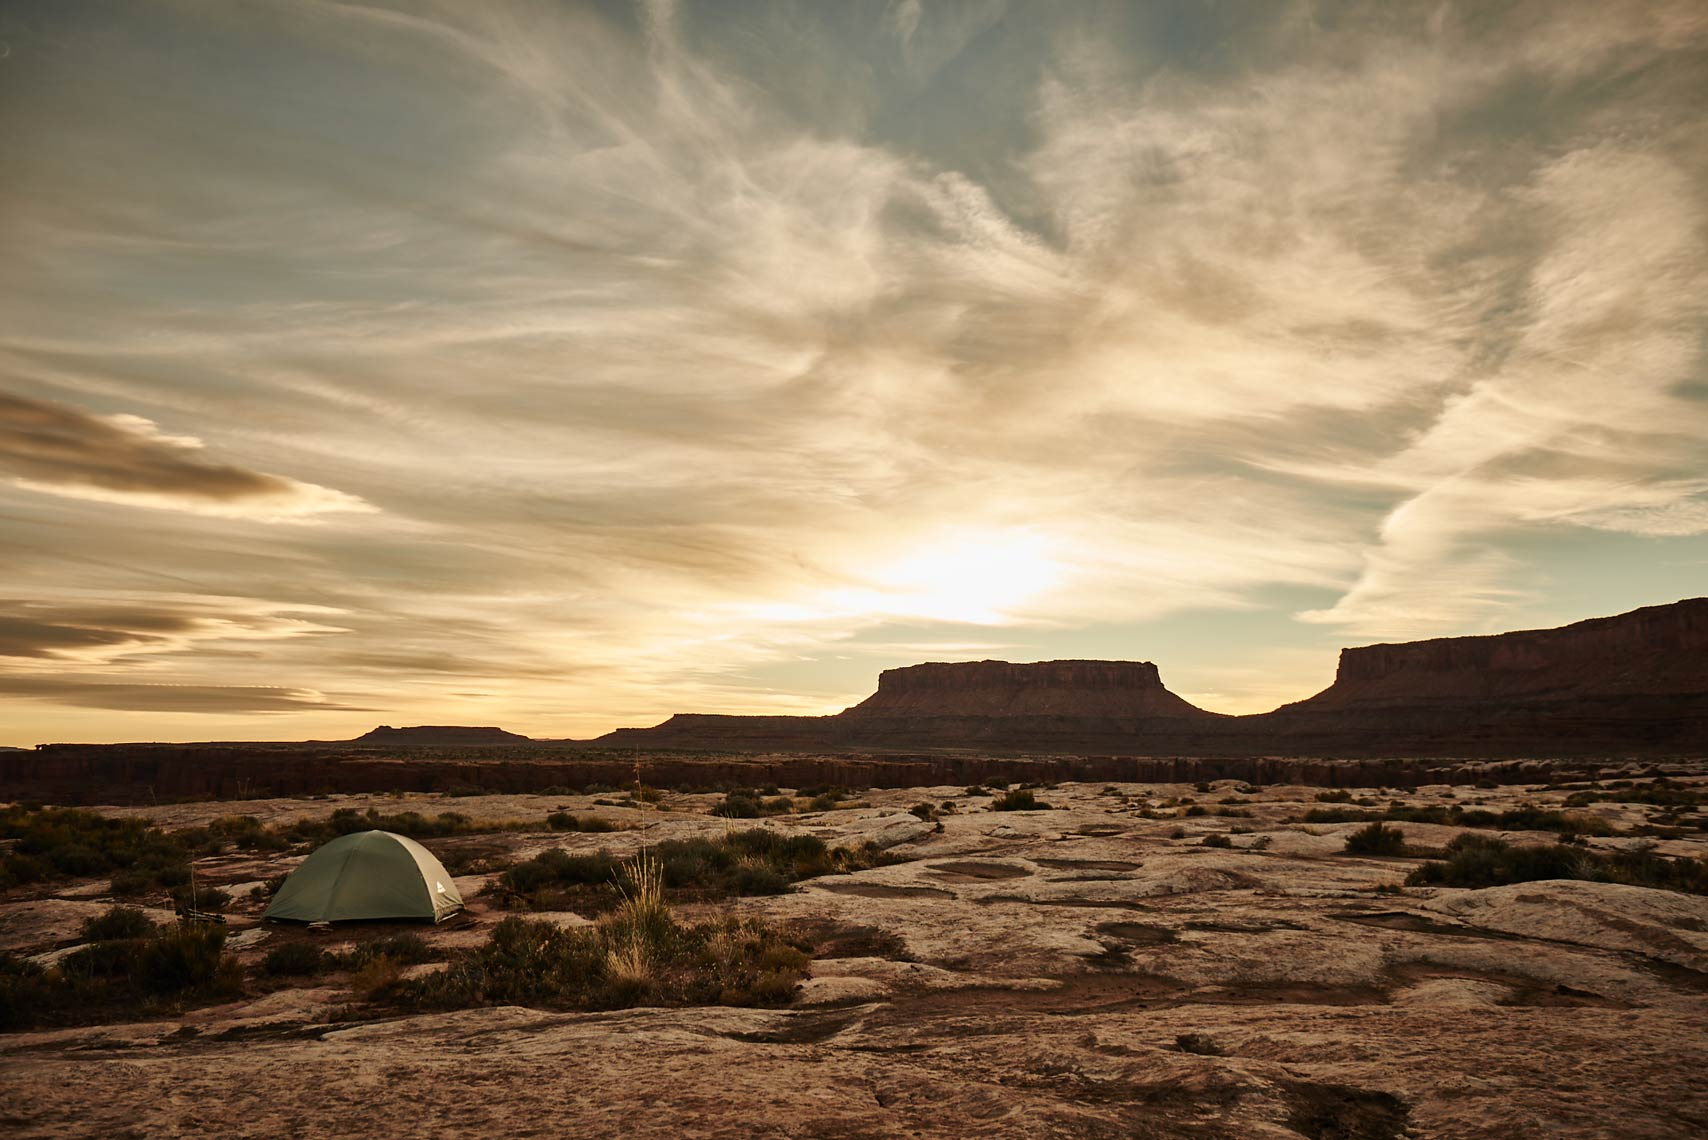 RD_141027_MOAB_5583